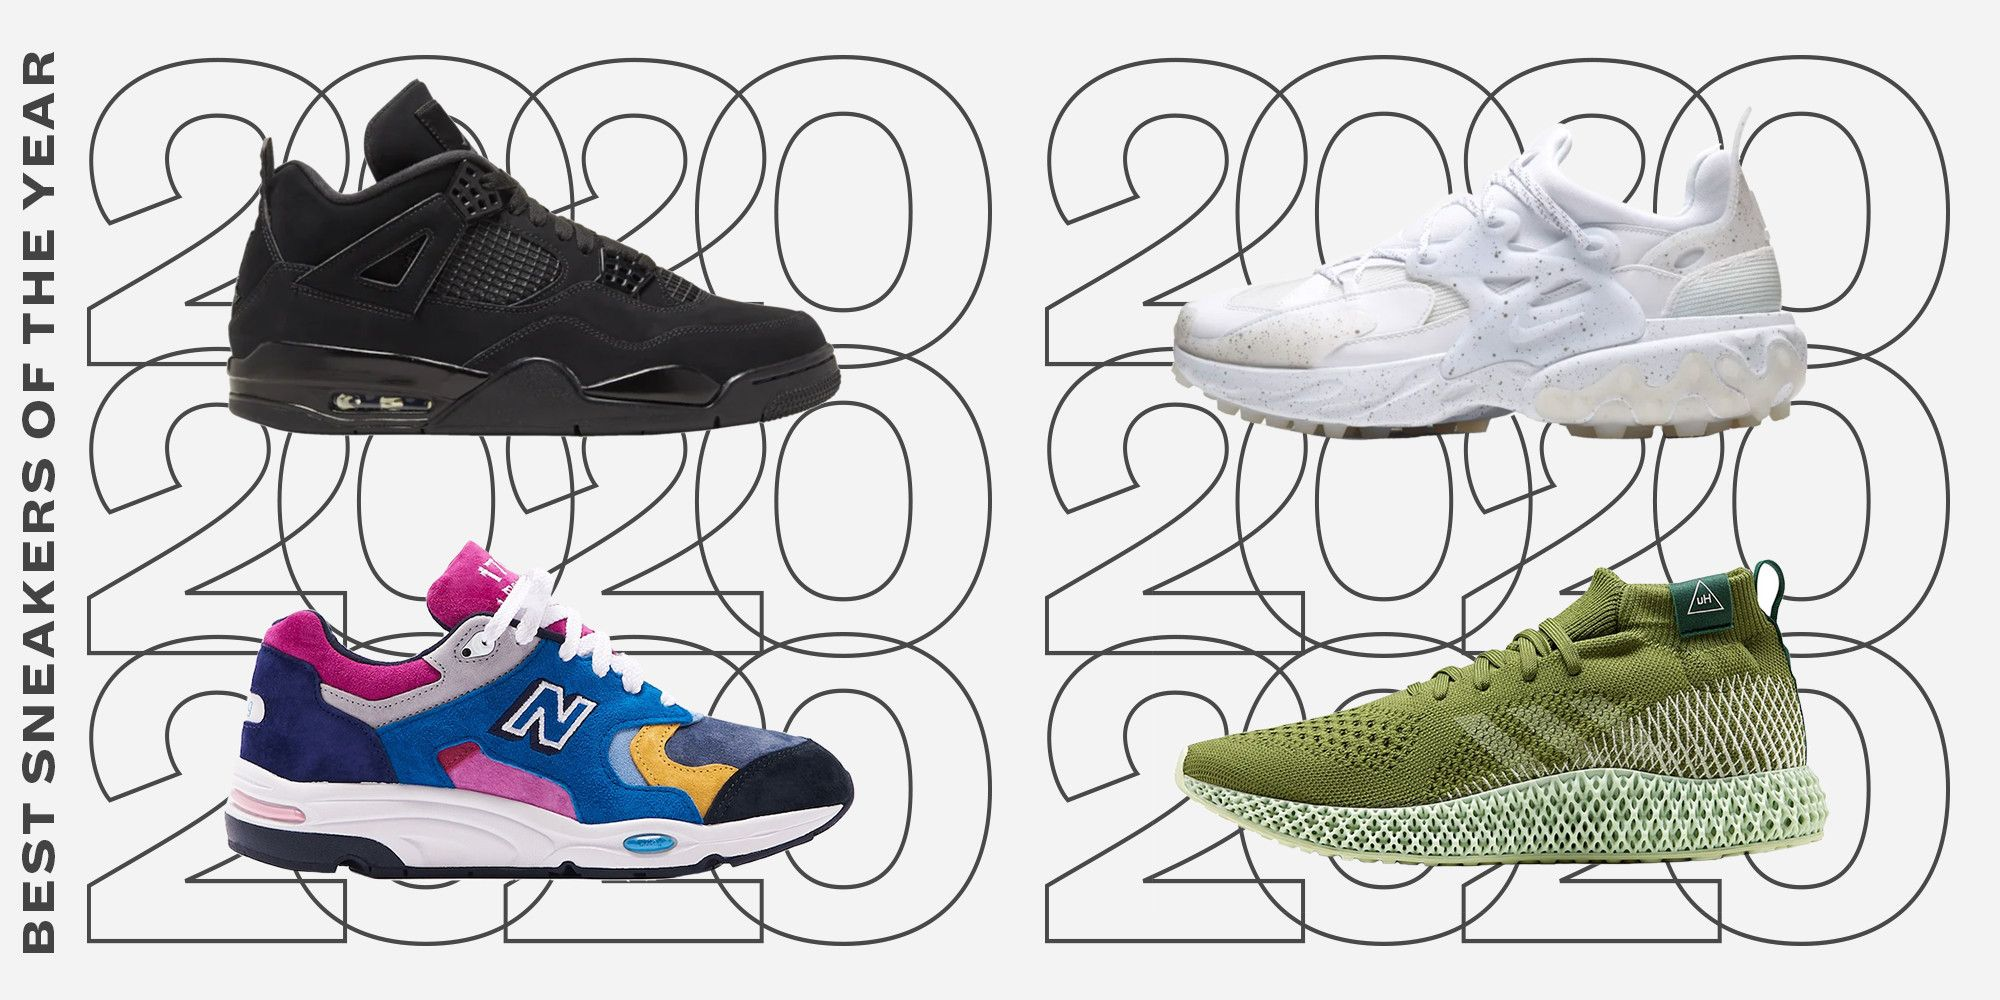 The Coolest Sneakers of 2020 (So Far)